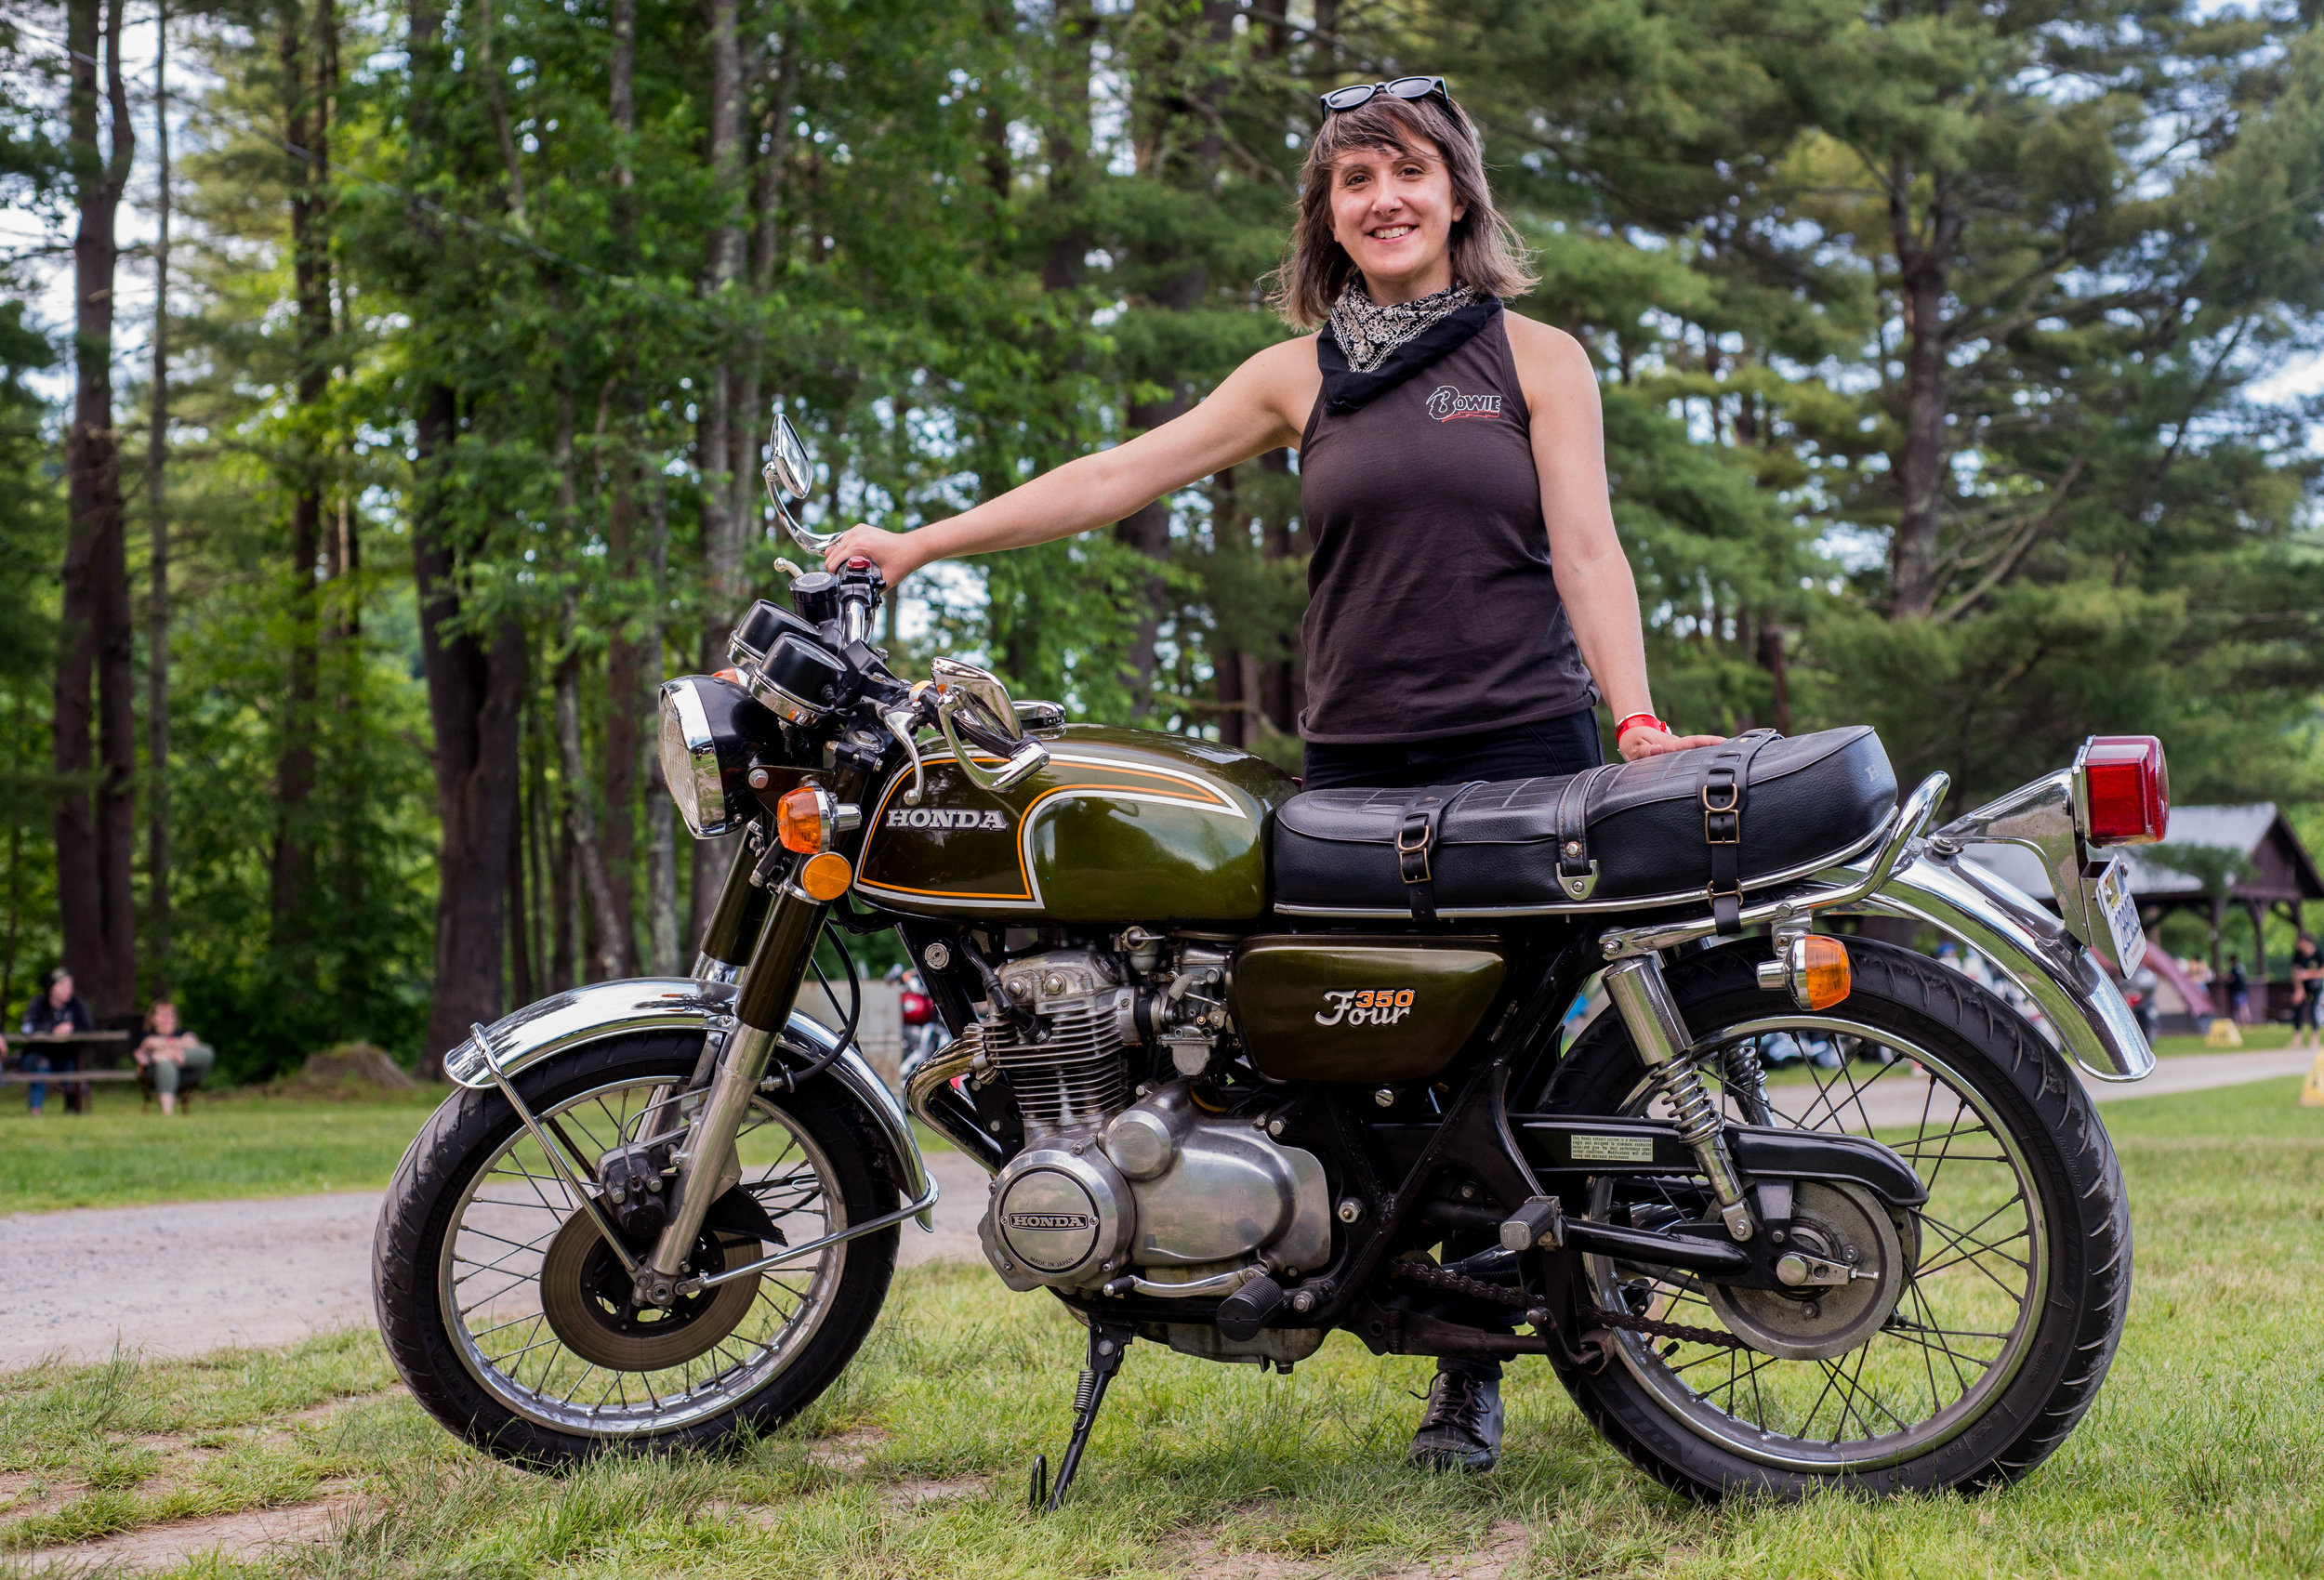 At Babes Ride Out East Coast 4, Catskills NY. Photo by Jessi Combs